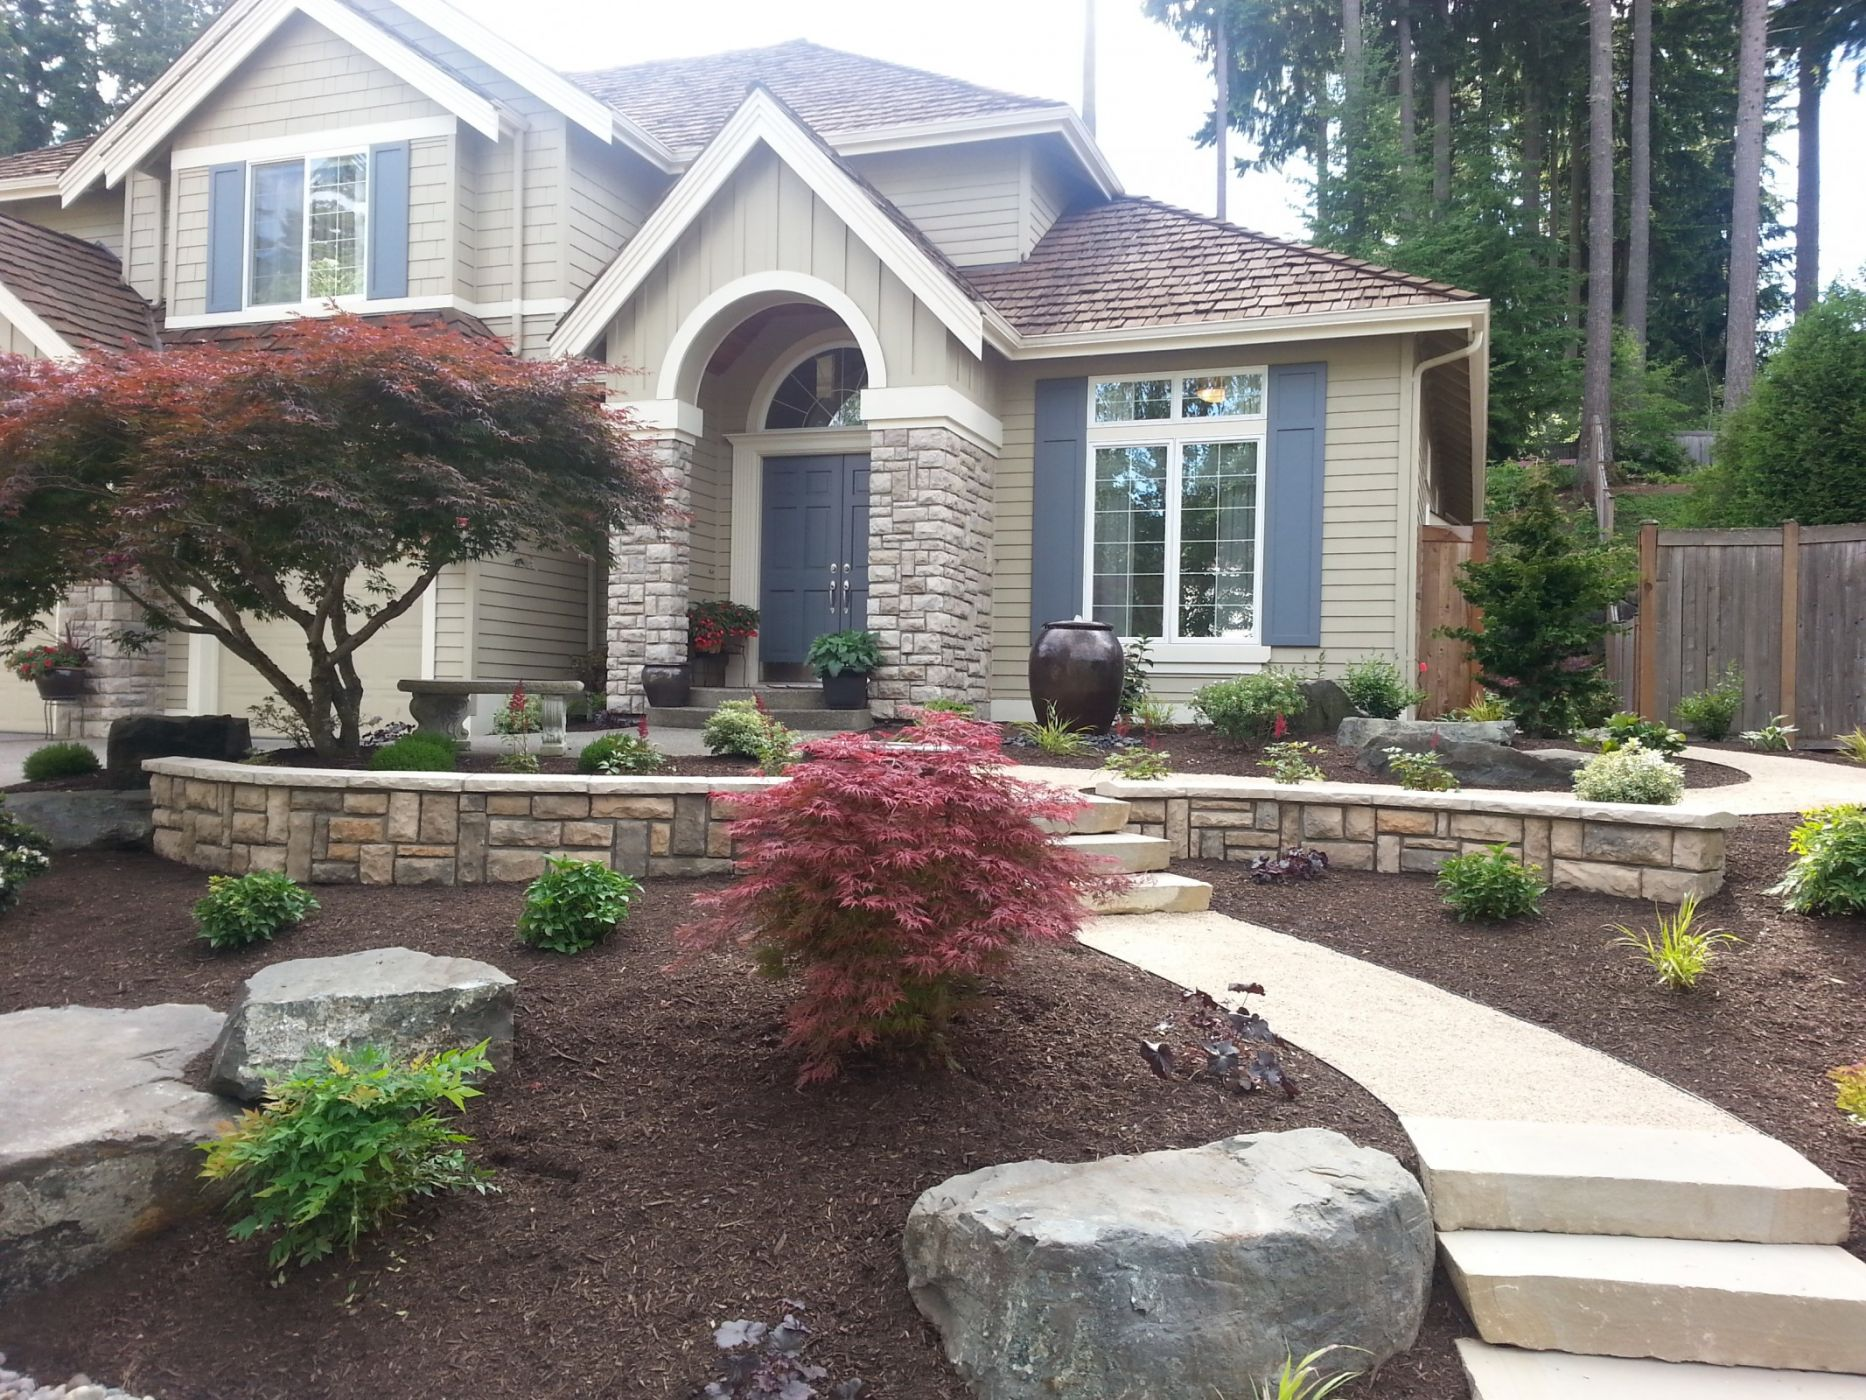 Janika landscaping ideas front yard illinois here for Small front yard design